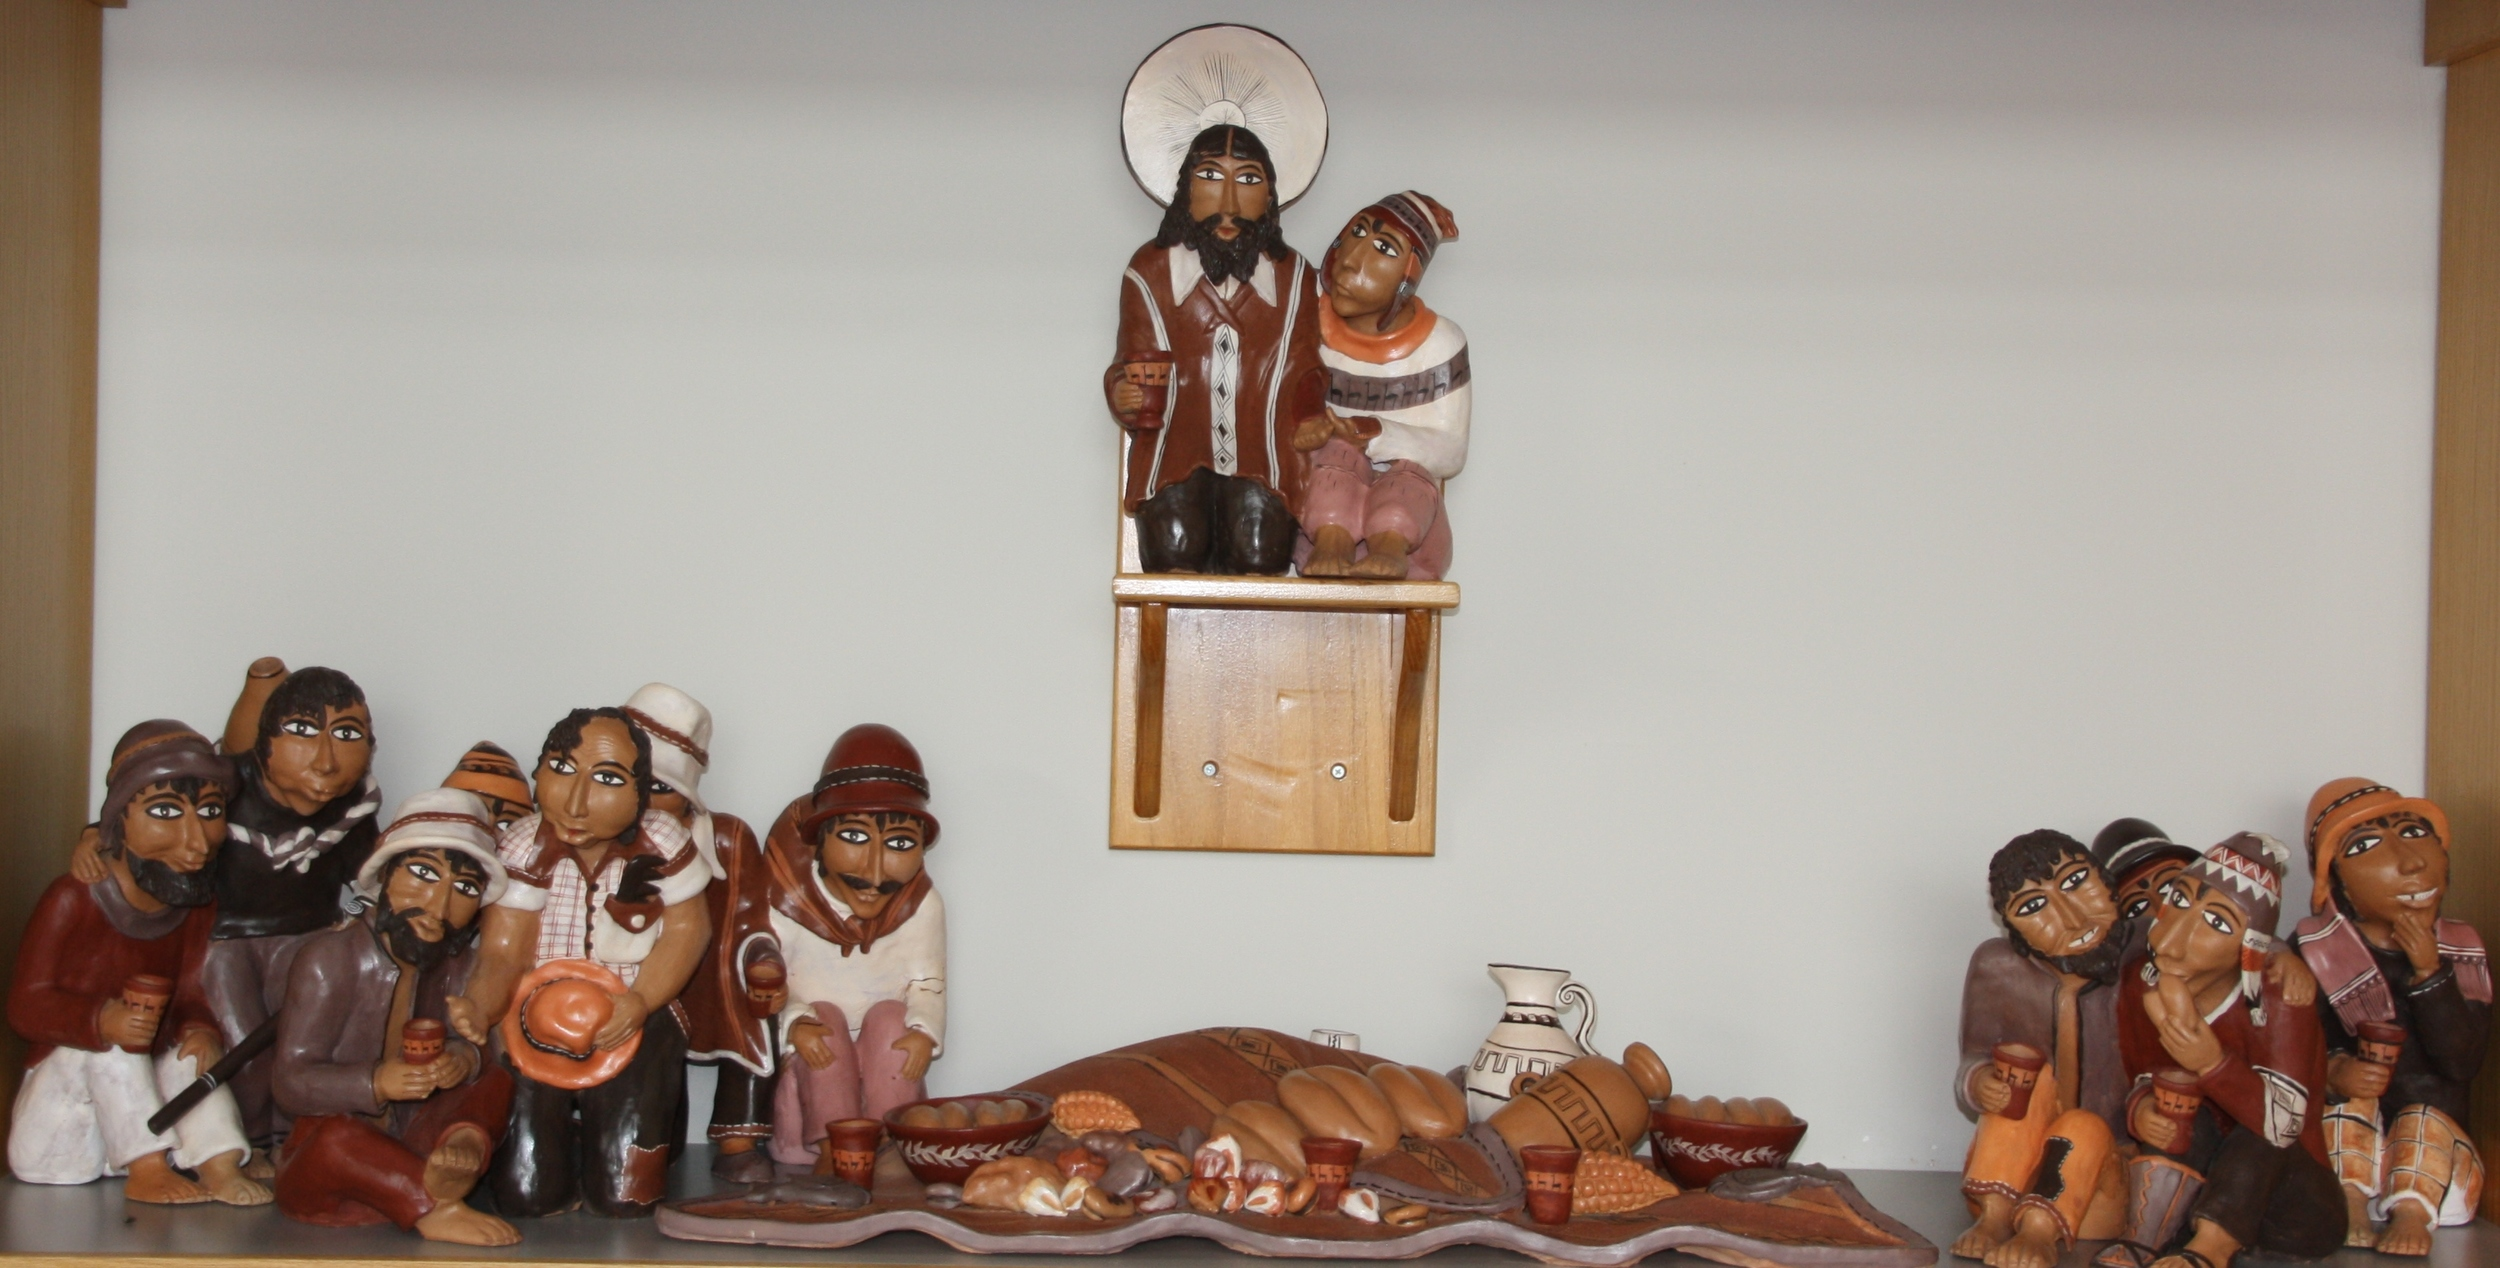 The Last Supper: Pottery from Peru